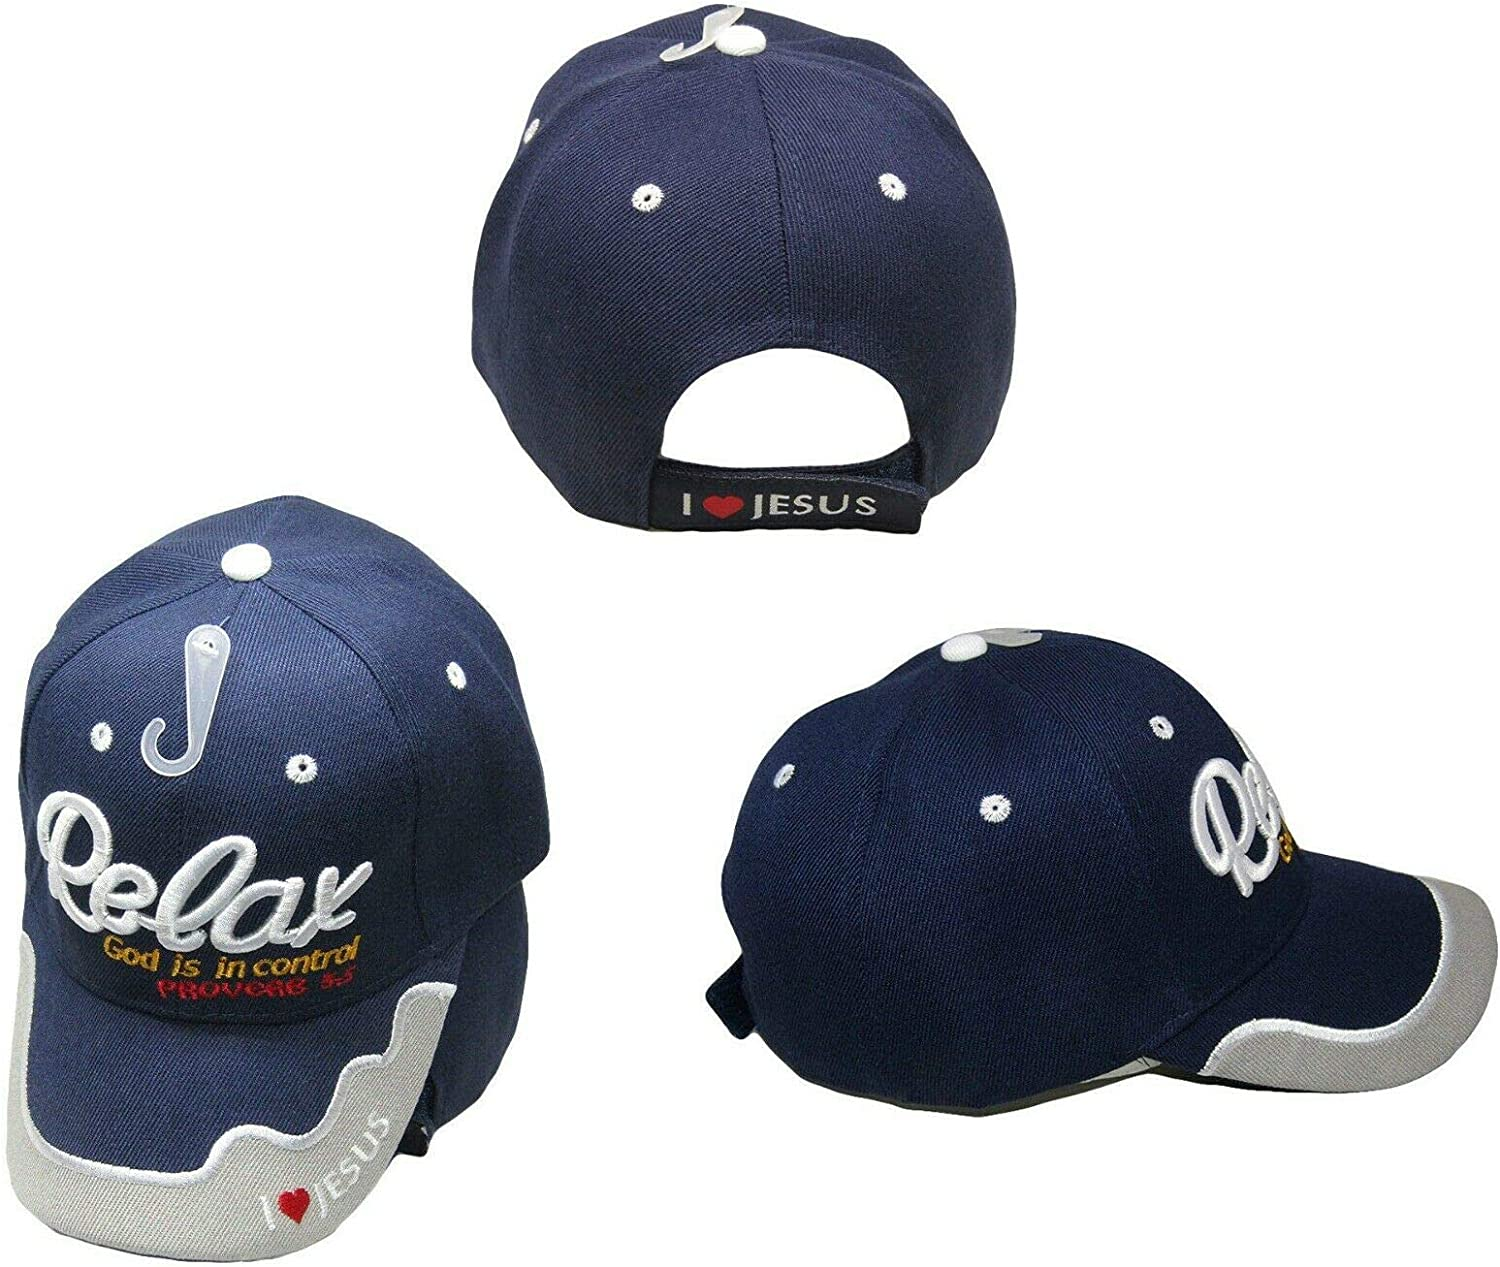 Trade Winds Relax God is in Control Christian Dark Blue Embroidered Cap Hat CAP815 (TOPW)